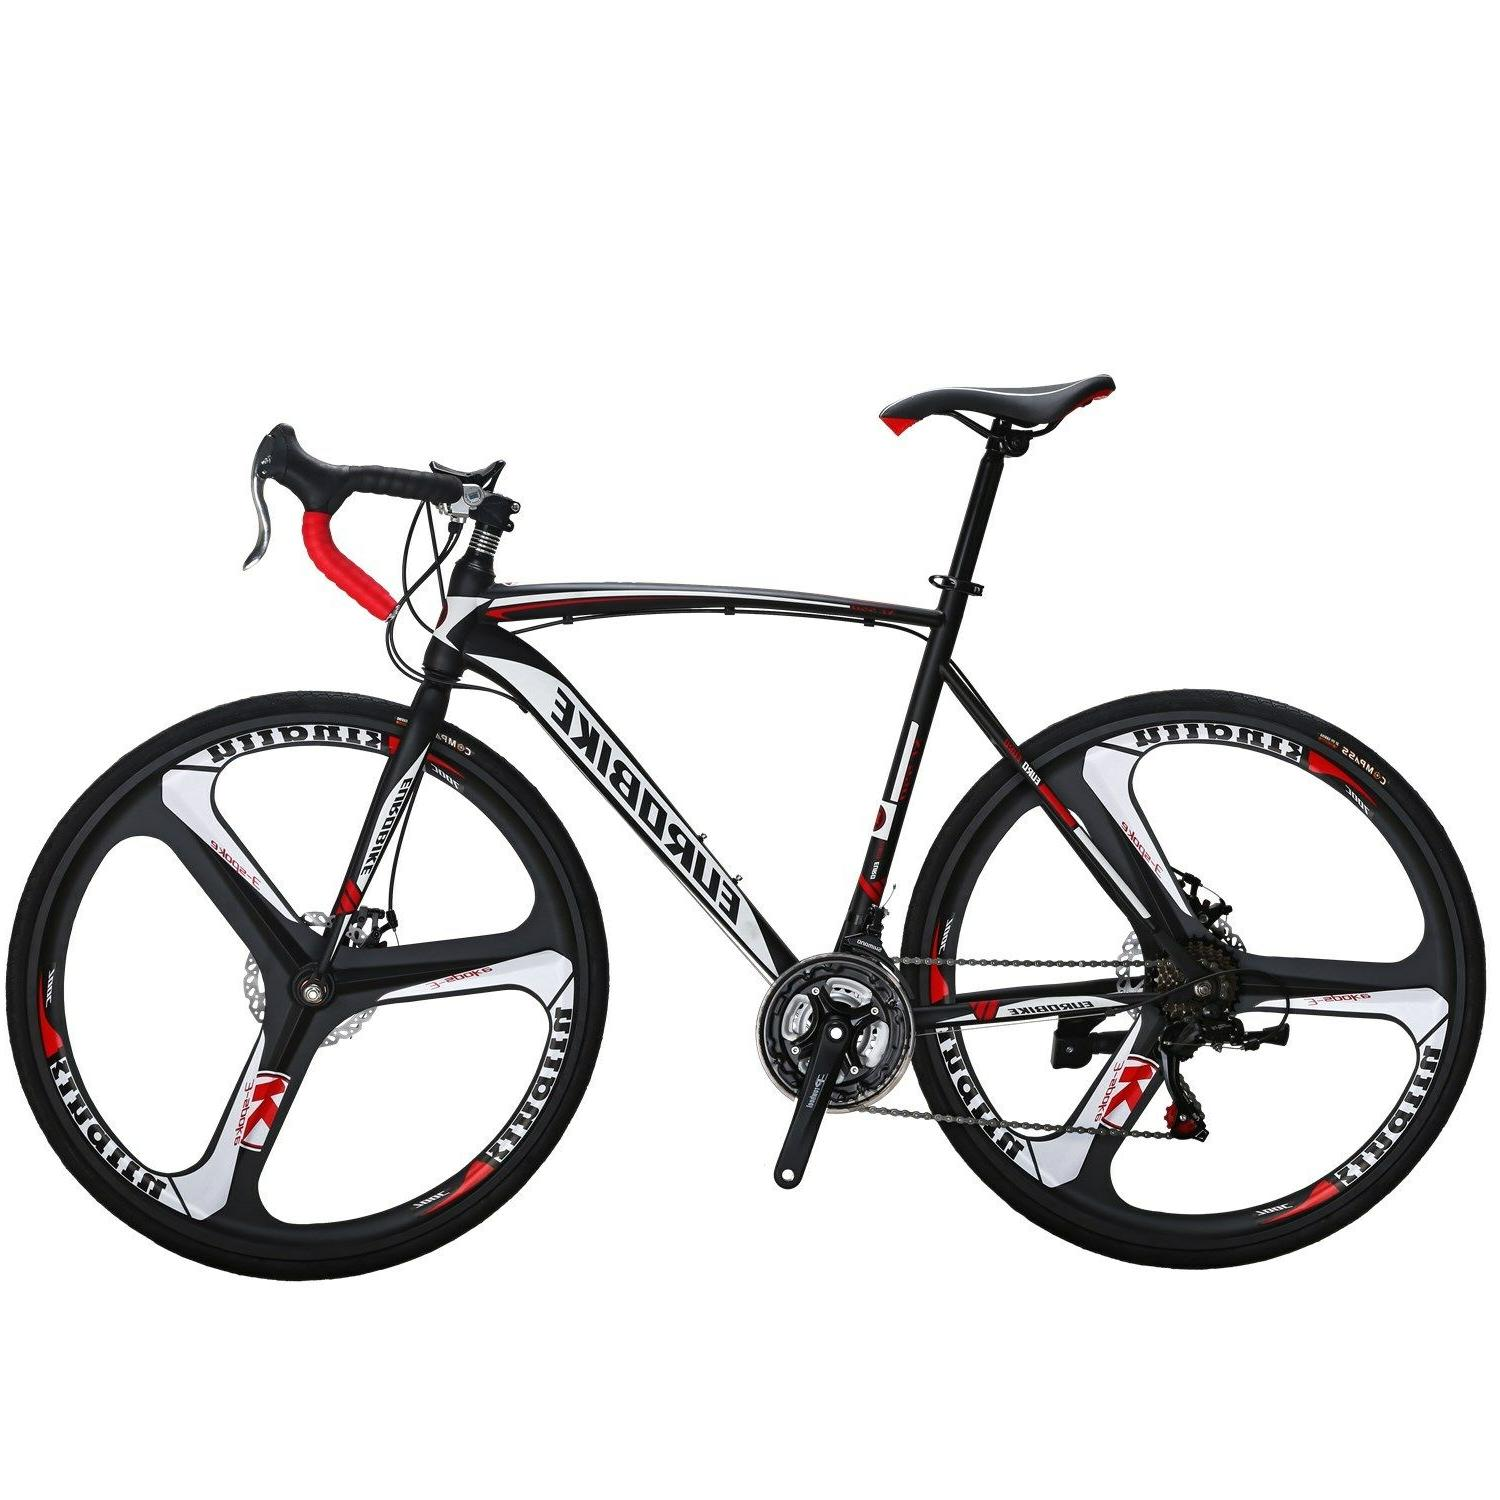 XC550 Speed Racing Bicyle bikes Disc Brakes cycling